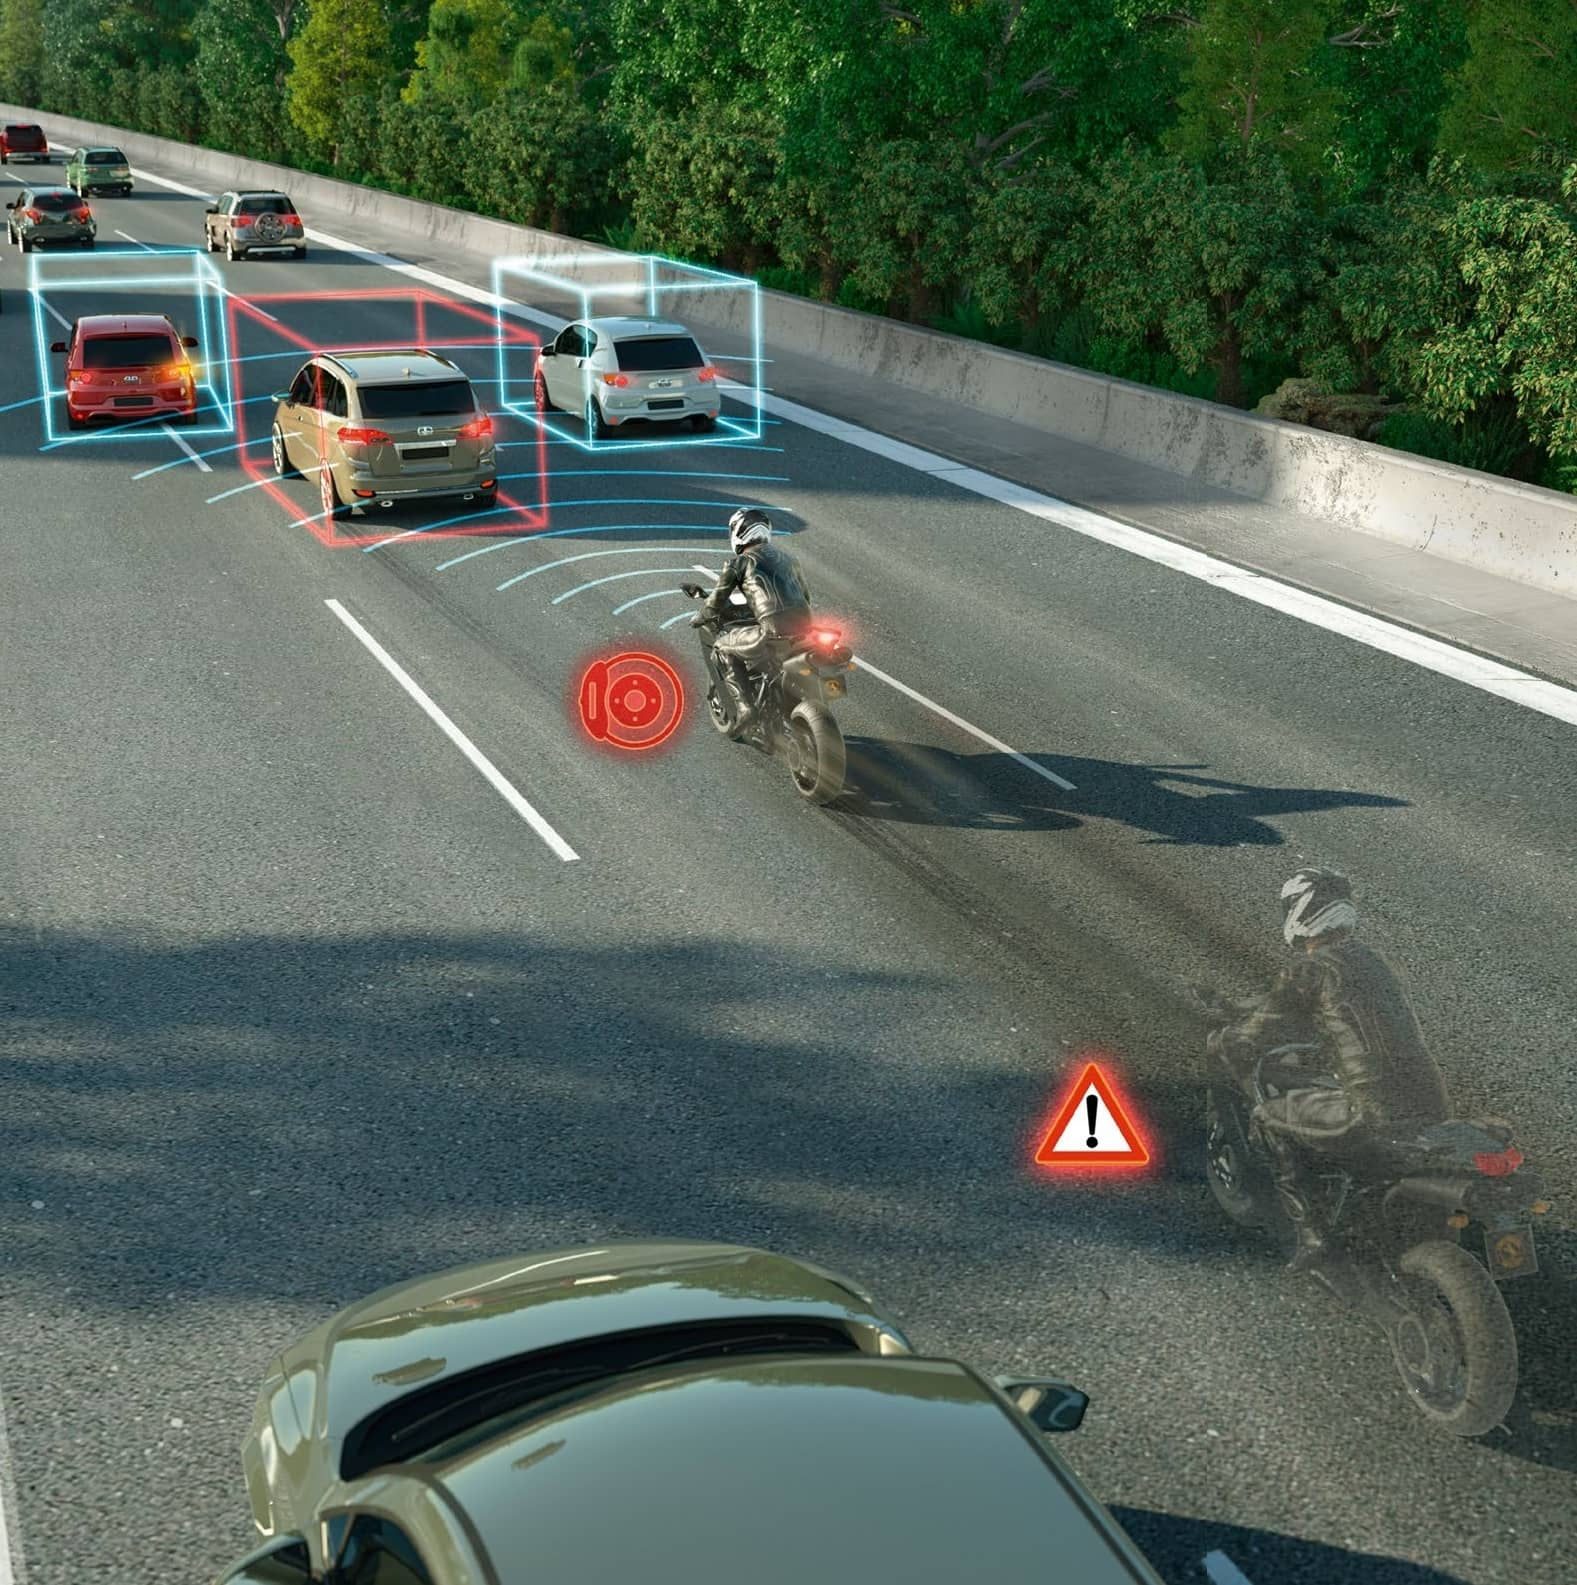 BETTER SAFETY WITH EMERGENCY BRAKE ASSIST FOR MOTORCYCLES